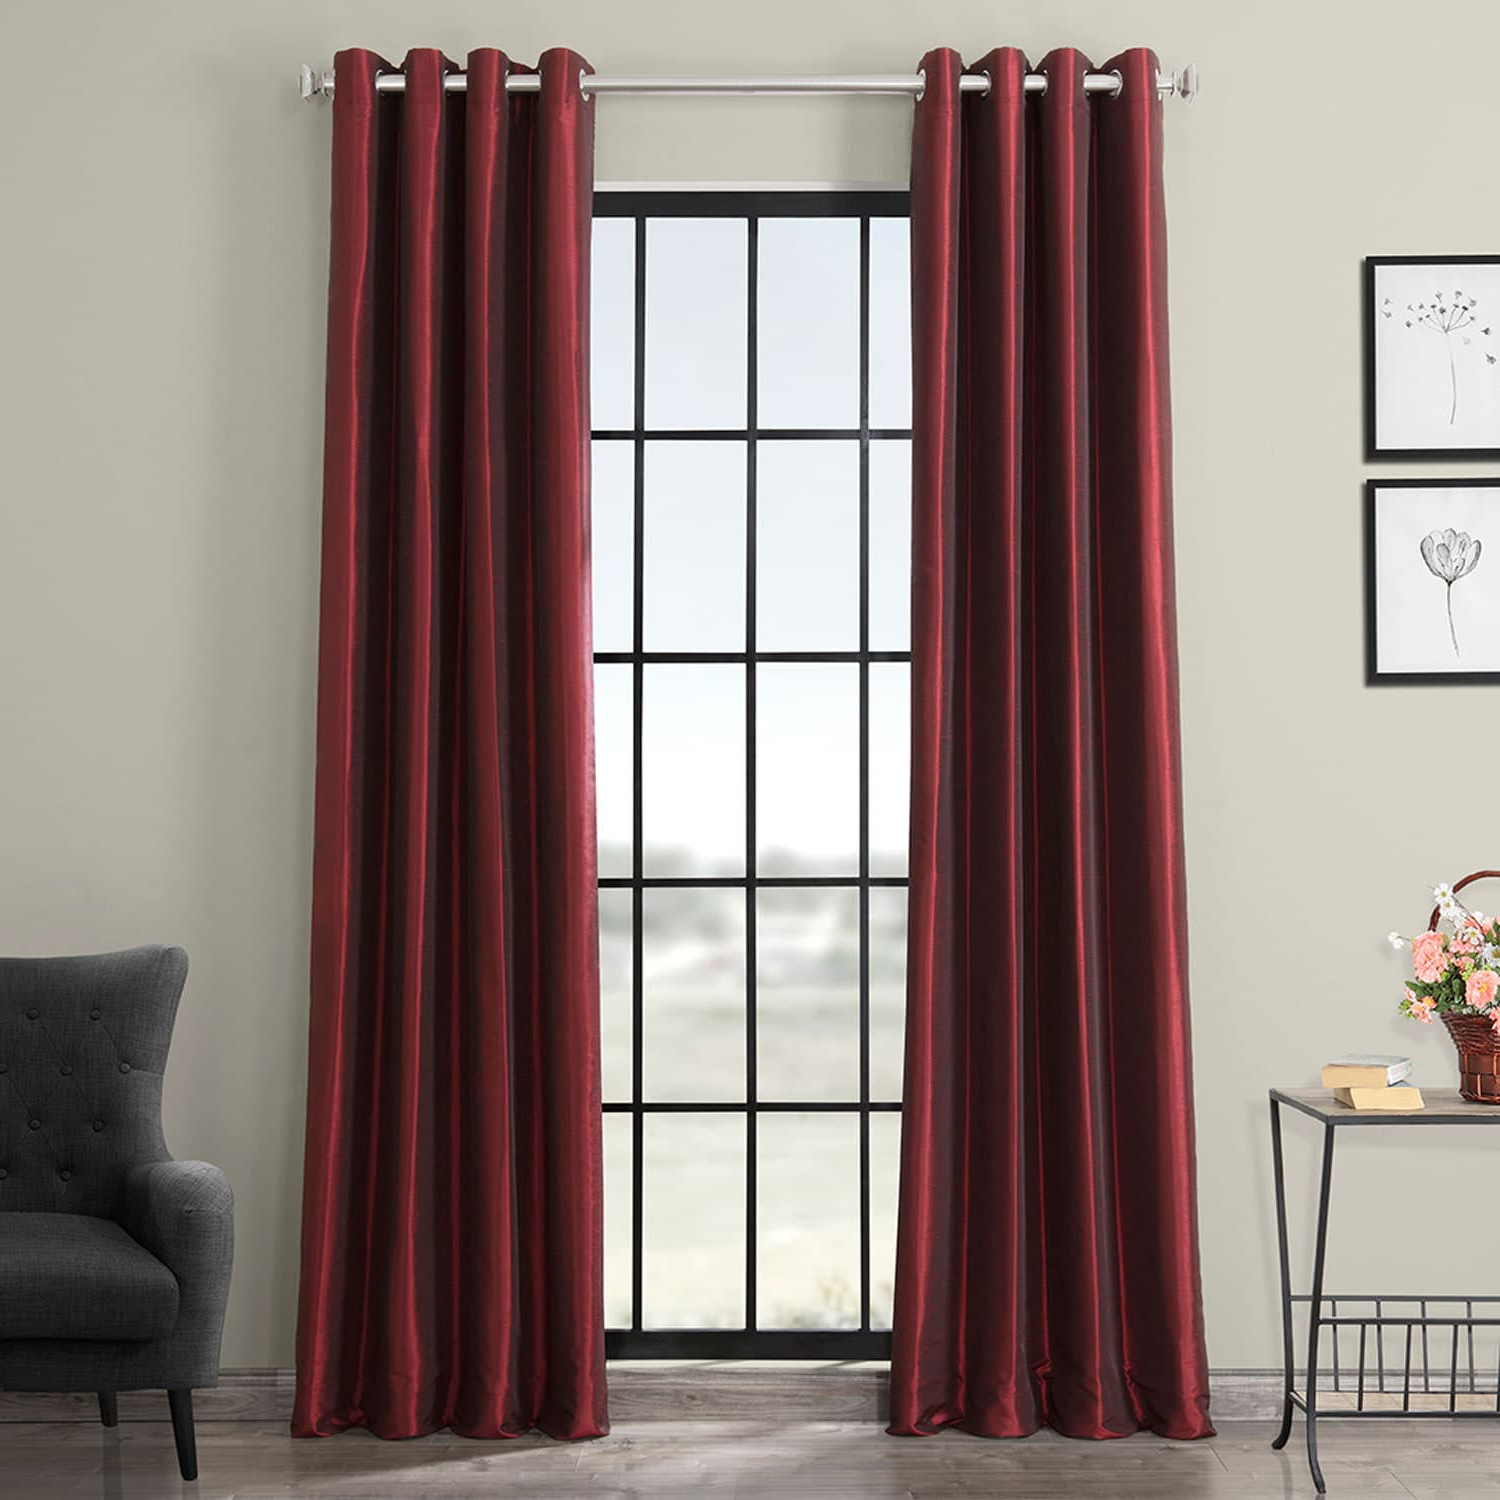 Most Current Off White Vintage Faux Textured Silk Curtains With Ruby Grommet Blackout Vintage Textured Faux Dupioni Silk Curtain (Gallery 16 of 20)